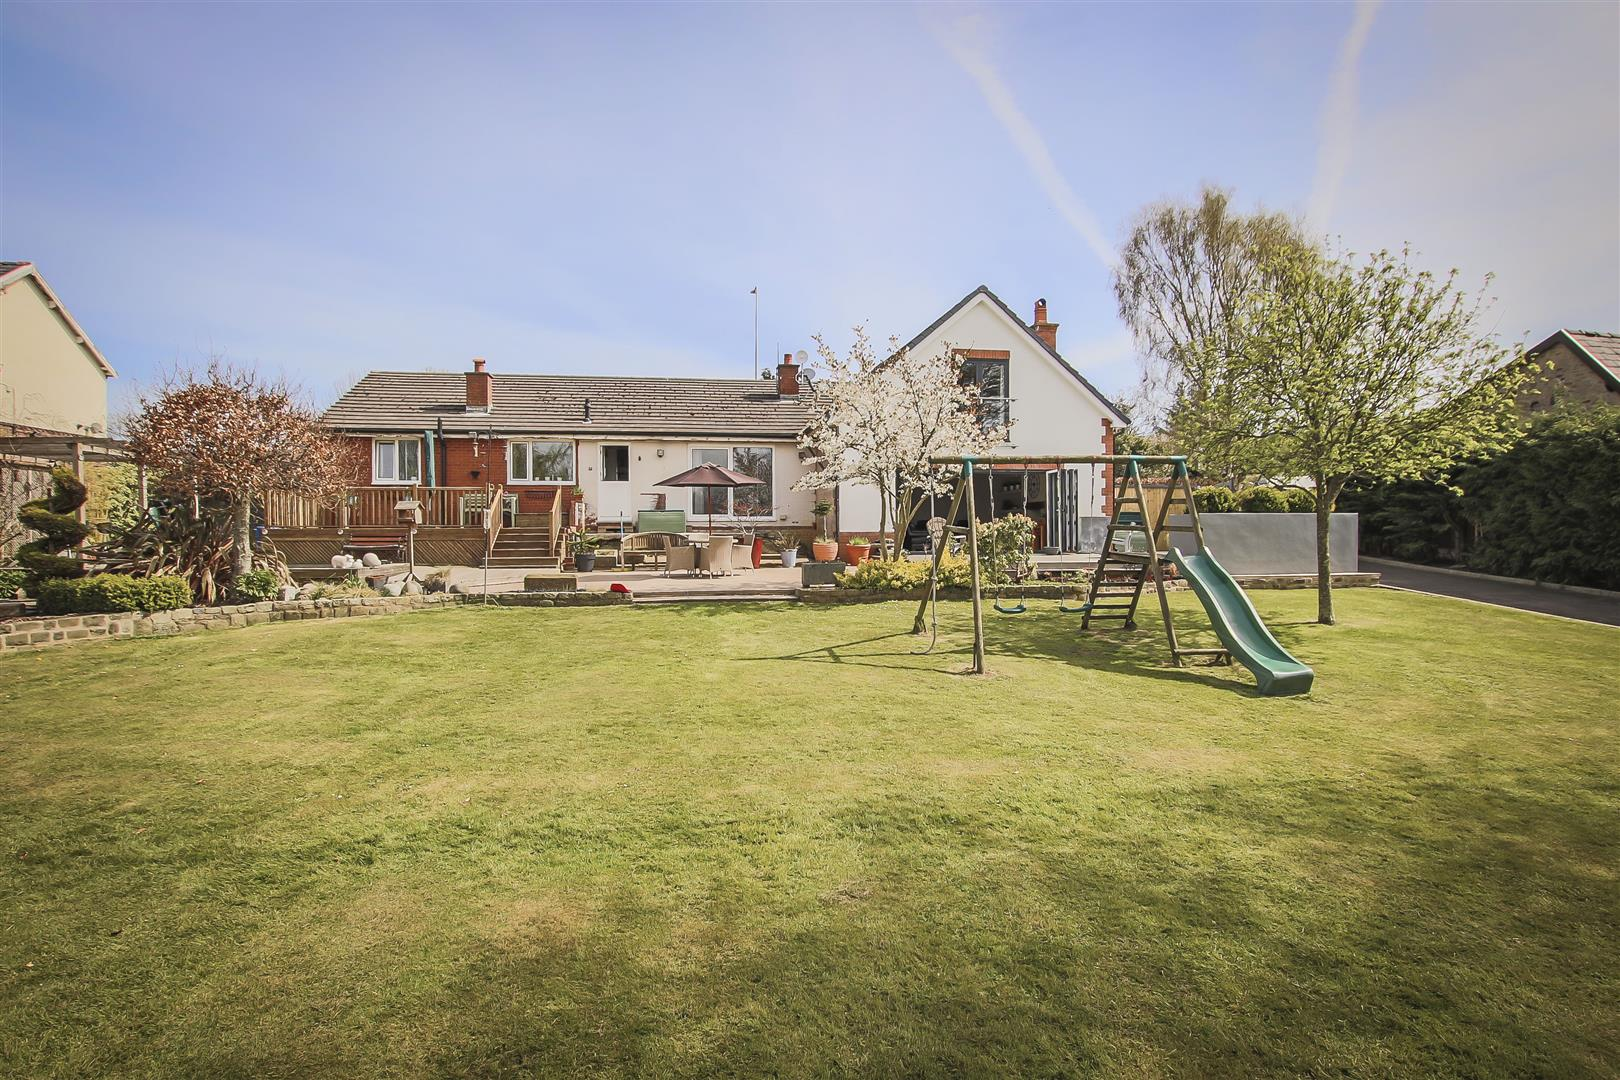 6 Bedroom House For Sale - Image 36